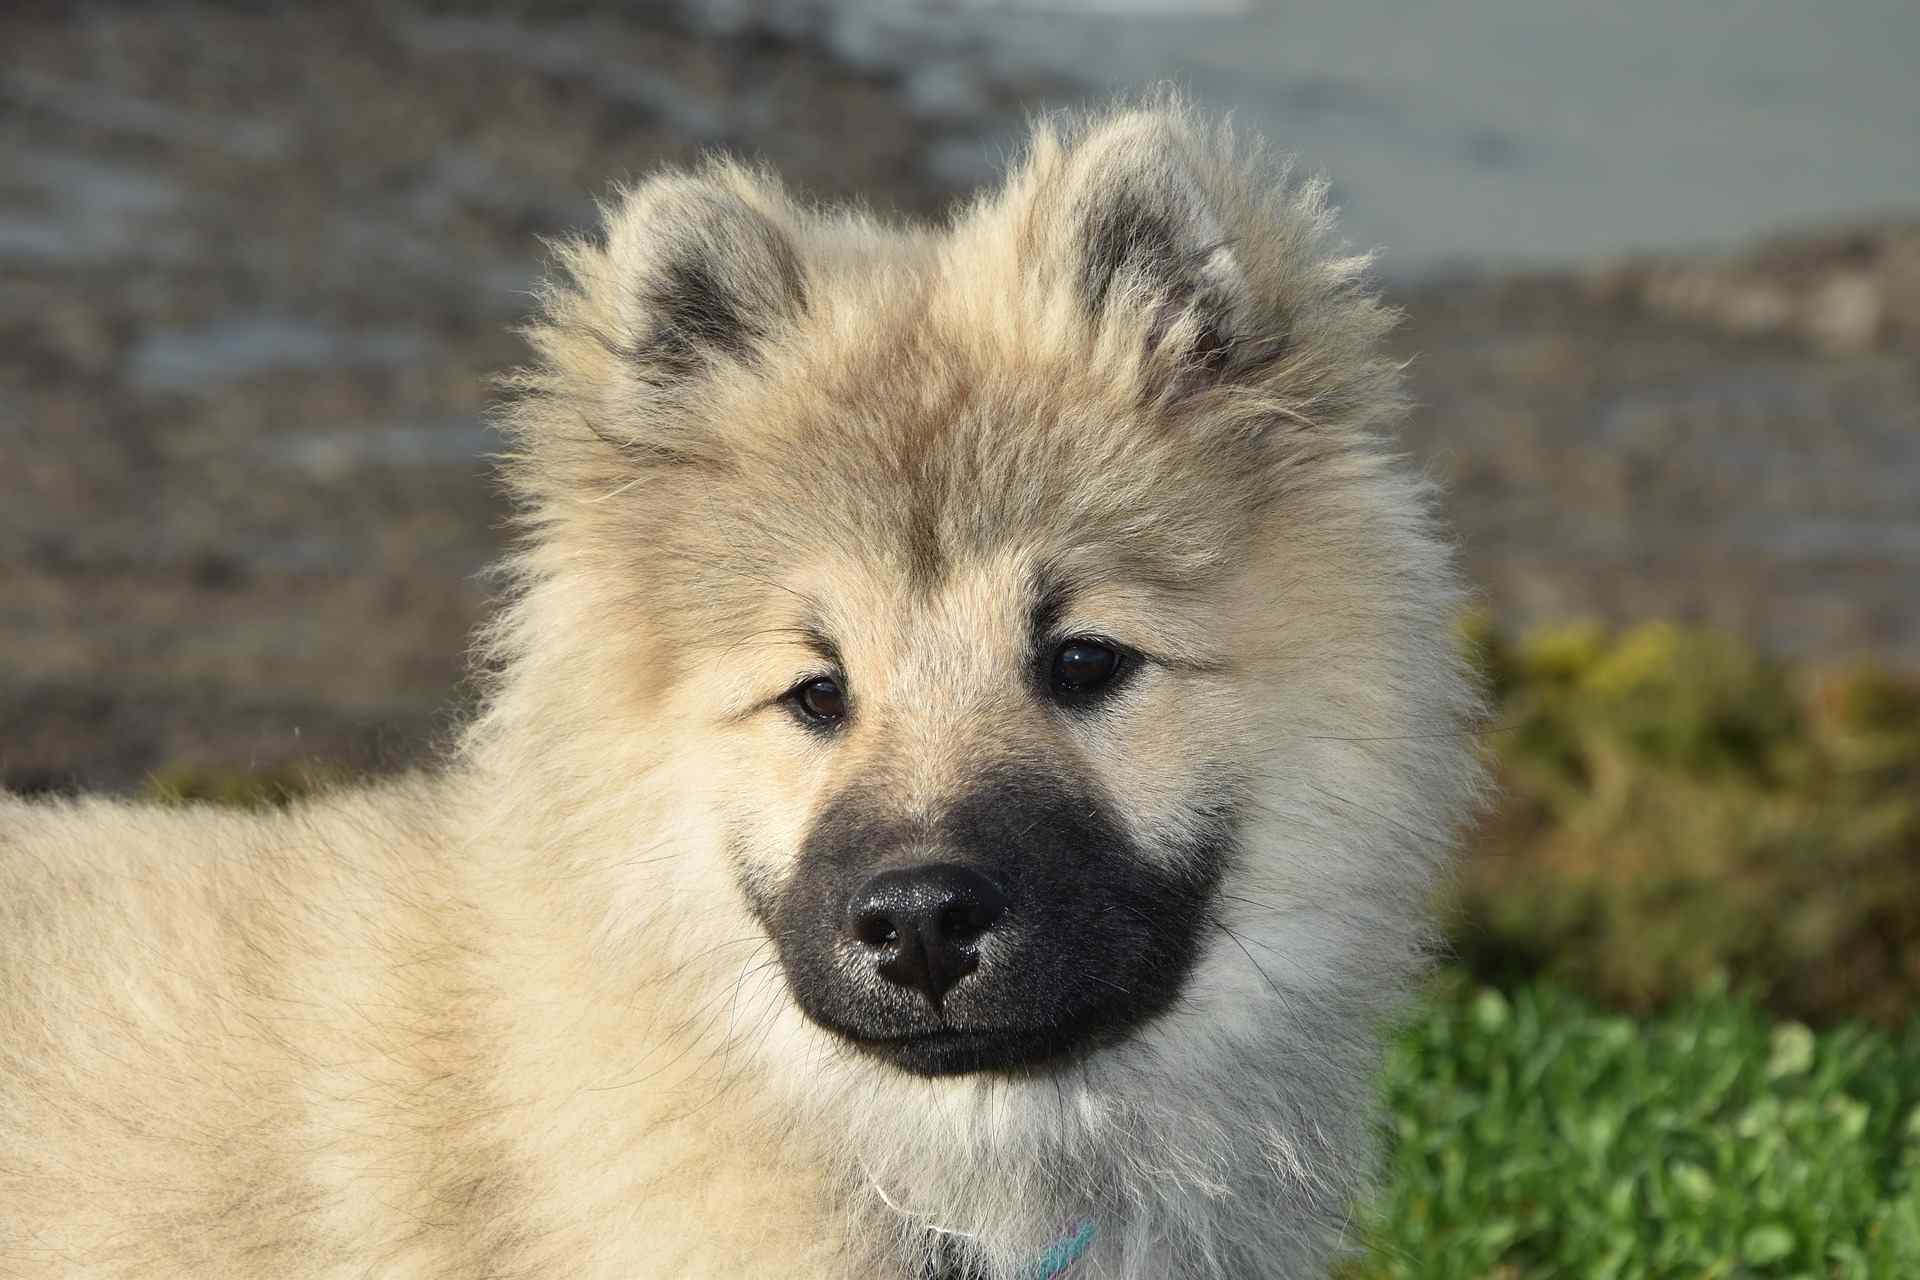 A Eurasier puppy looking into the distance